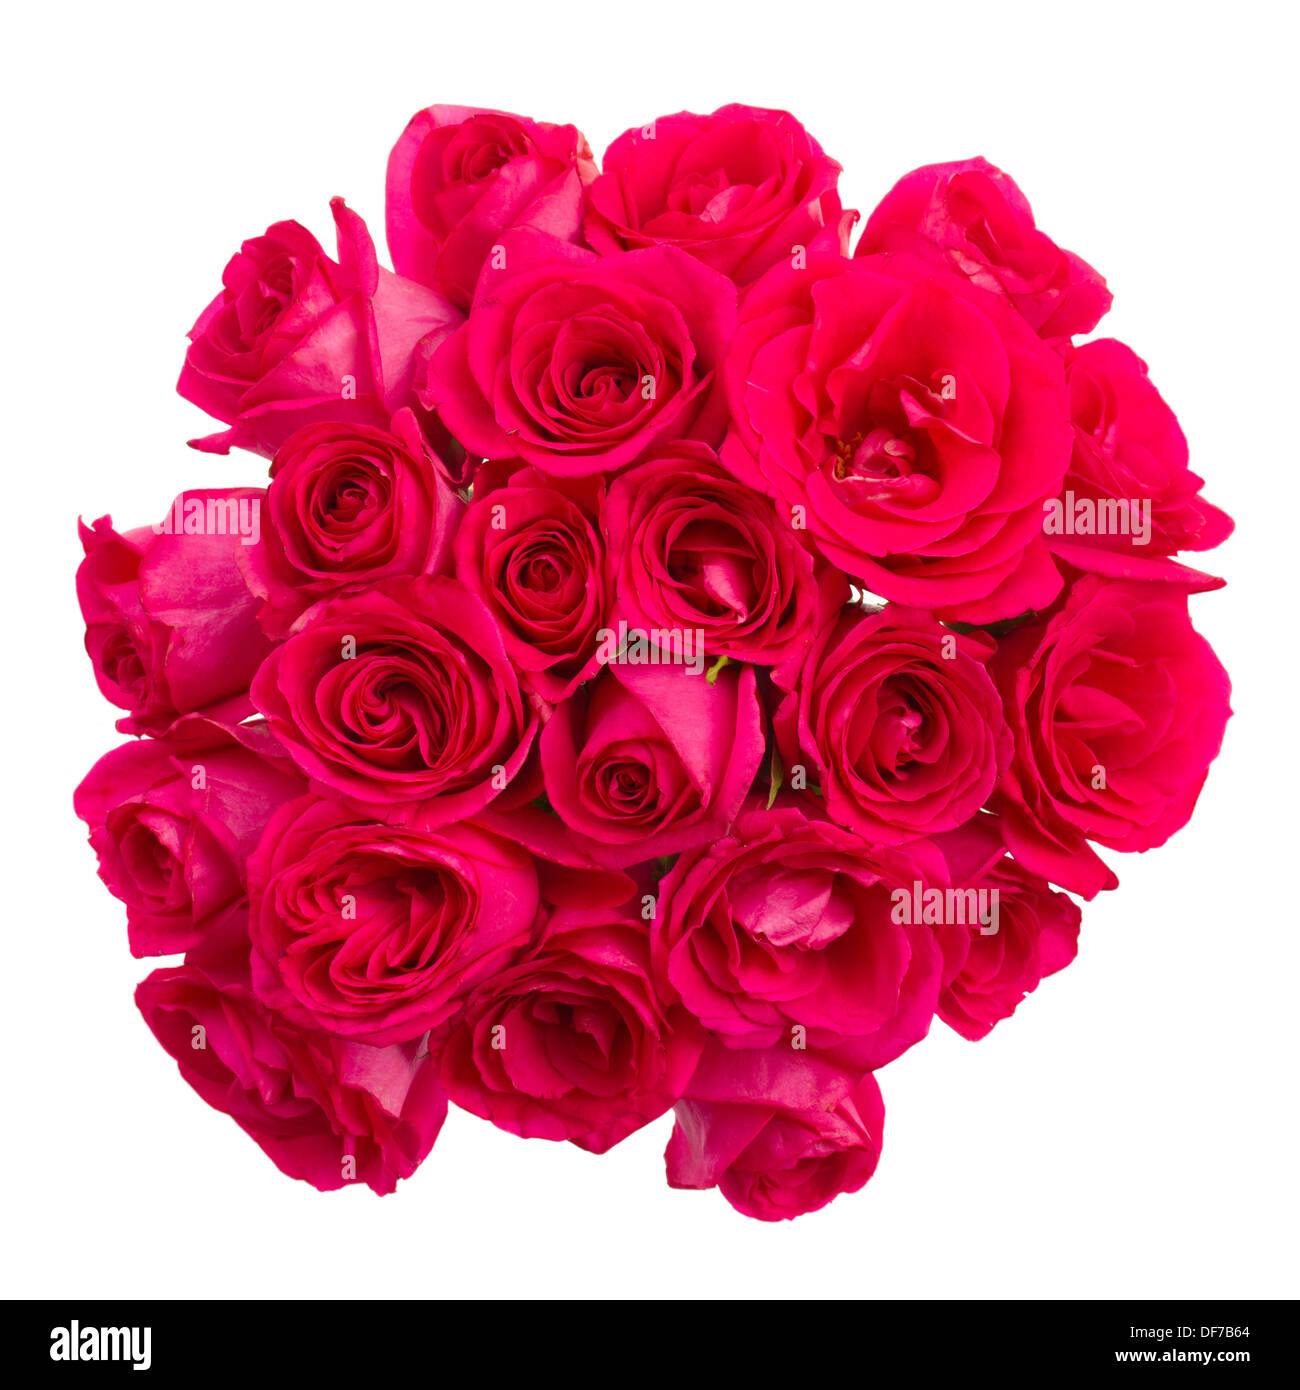 round bouquet of mauve roses - Stock Image